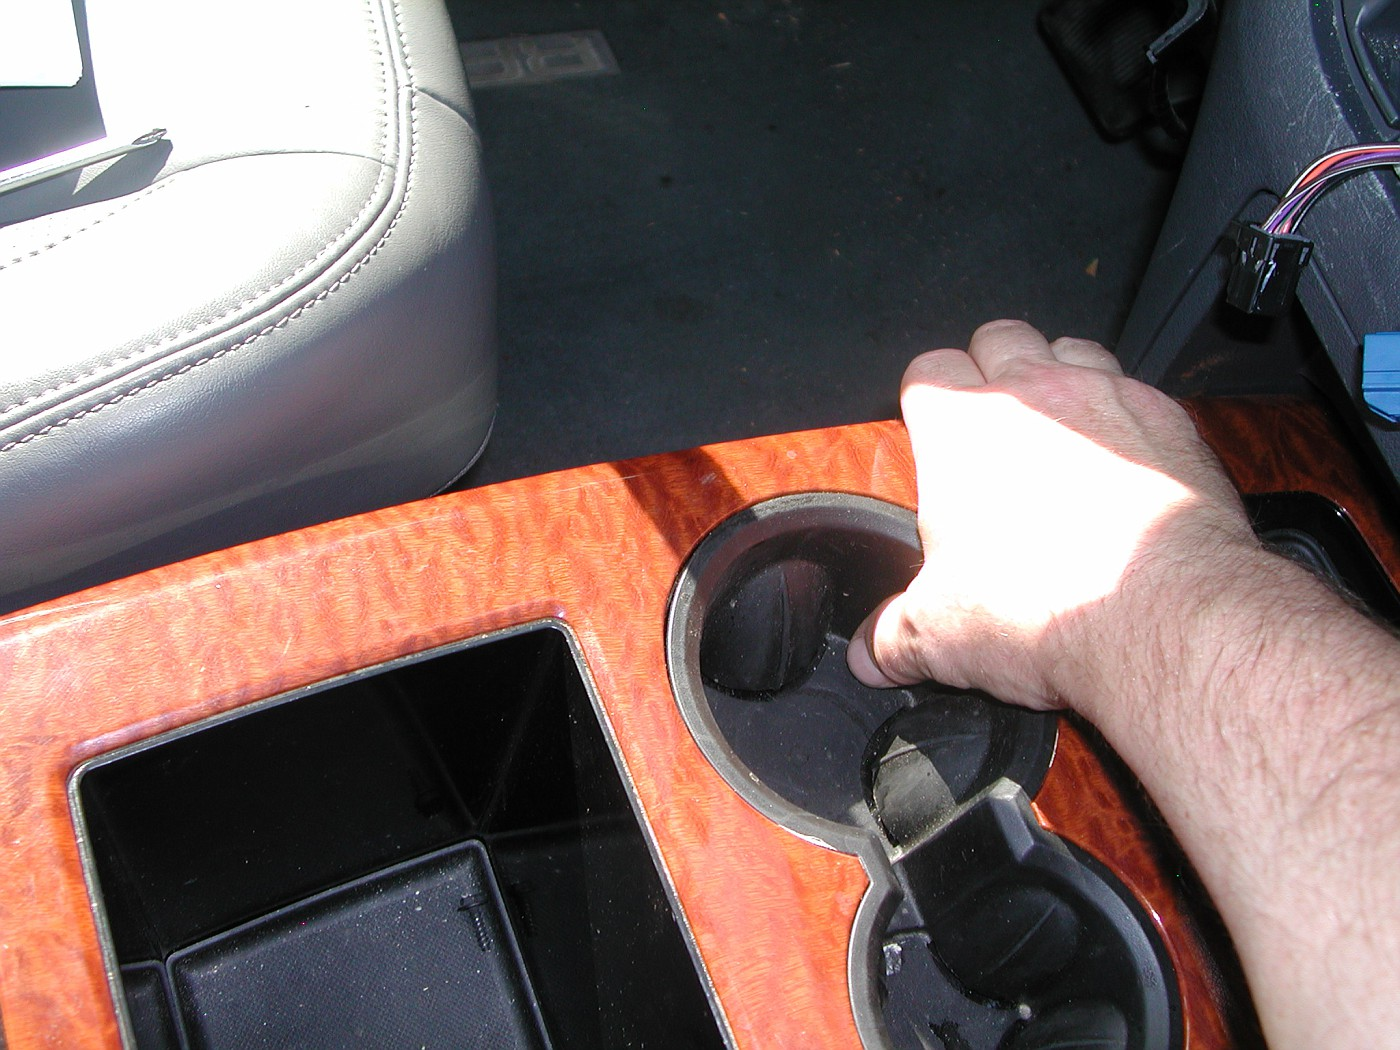 Remove center console upper trim pan by pulling up on the edges 1st